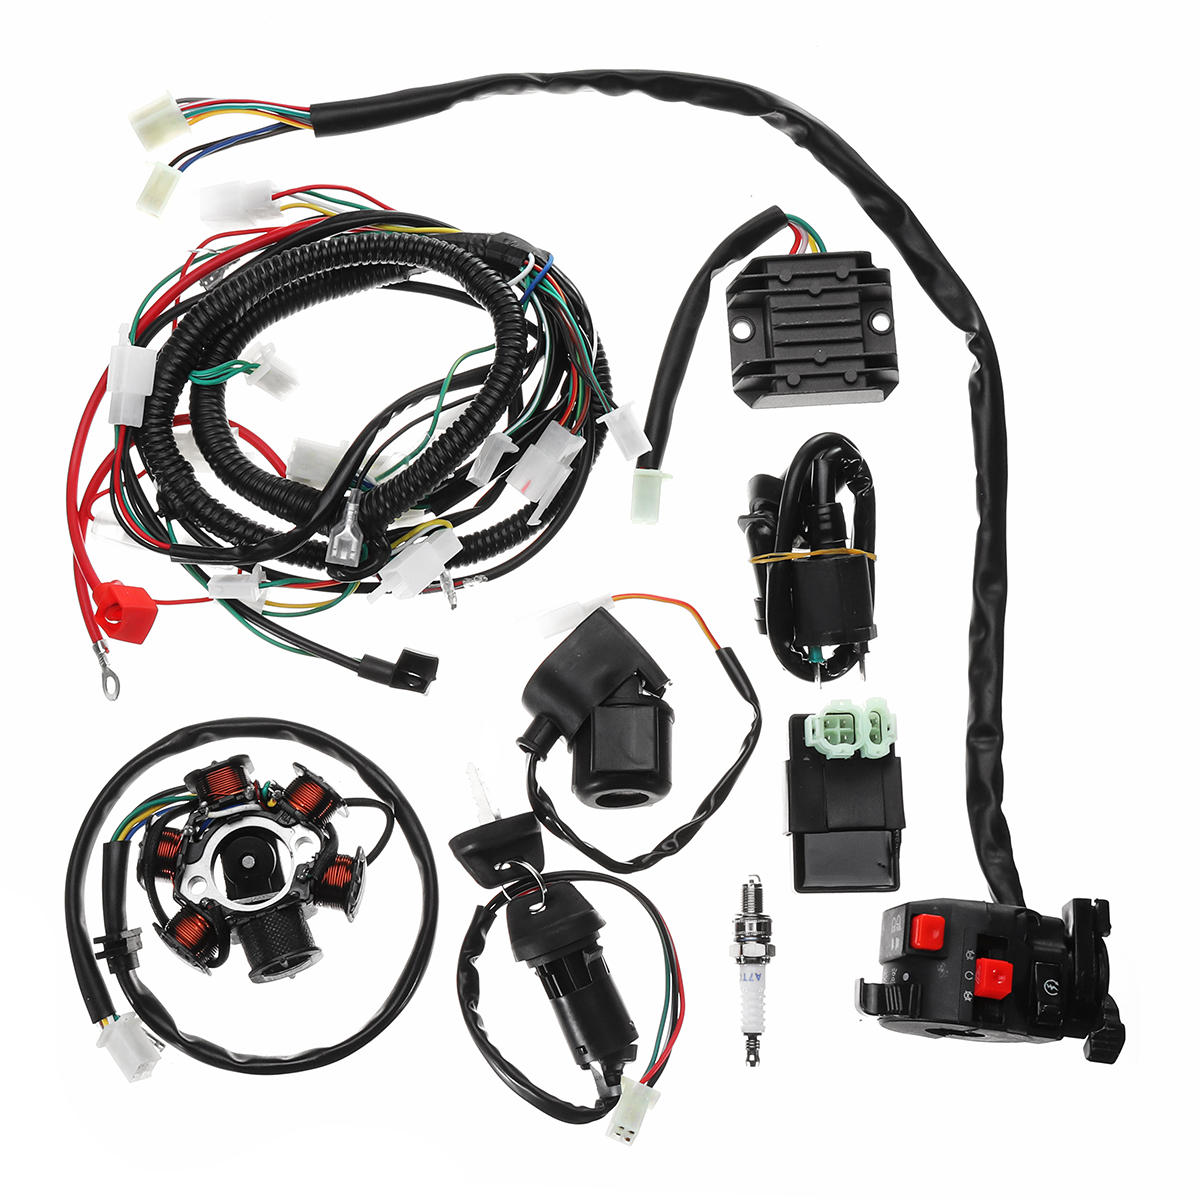 full electrics wiring harness loom cdi coil for gy6 150cc atv quad go kart buggy [ 1200 x 1200 Pixel ]